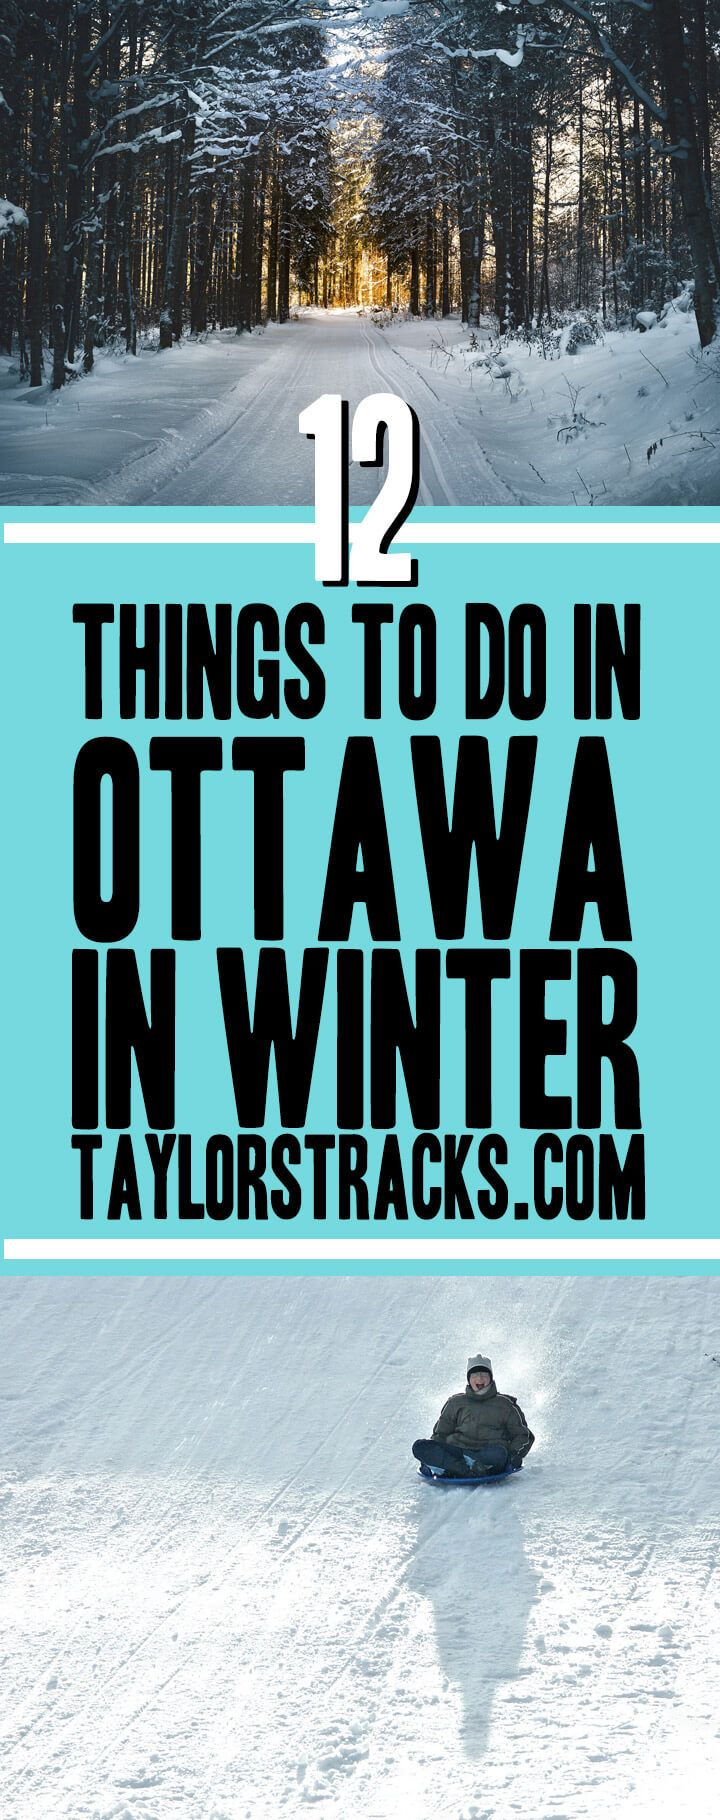 Don't miss seeing Canada's capital, Ottawa, during the most beautiful time of the year! Winter is Ottawa is amazing and has so many activities! #canada ***** Ottawa Canada | Ottawa Canada winter | Ottawa Canada things to do | Things to do in Ottawa winter | Canada travel | Canada destinations | Ottawa Senators | Ottawa outdoors | Ottawa | Ottawa activities